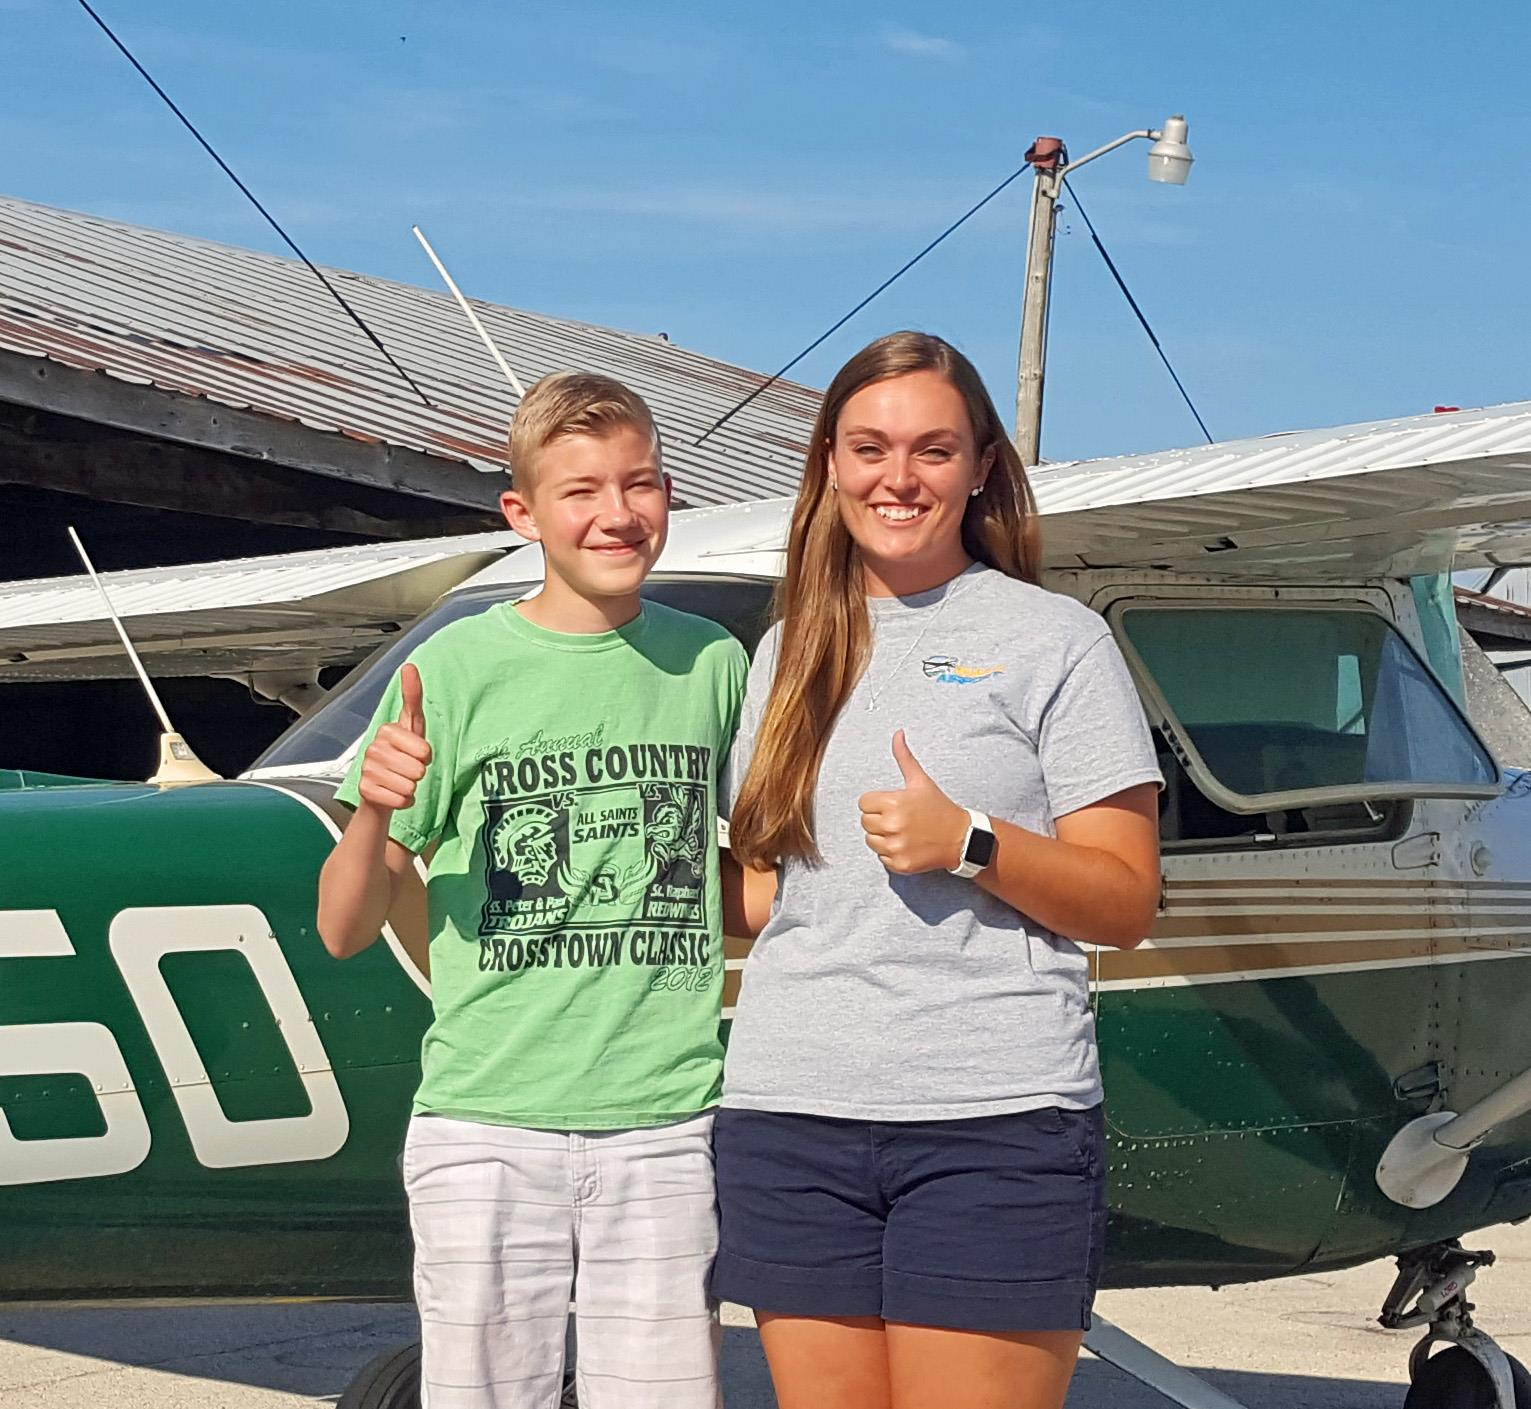 andrew-kluzak-poplar-grove-airport-pilot-flight-lessons